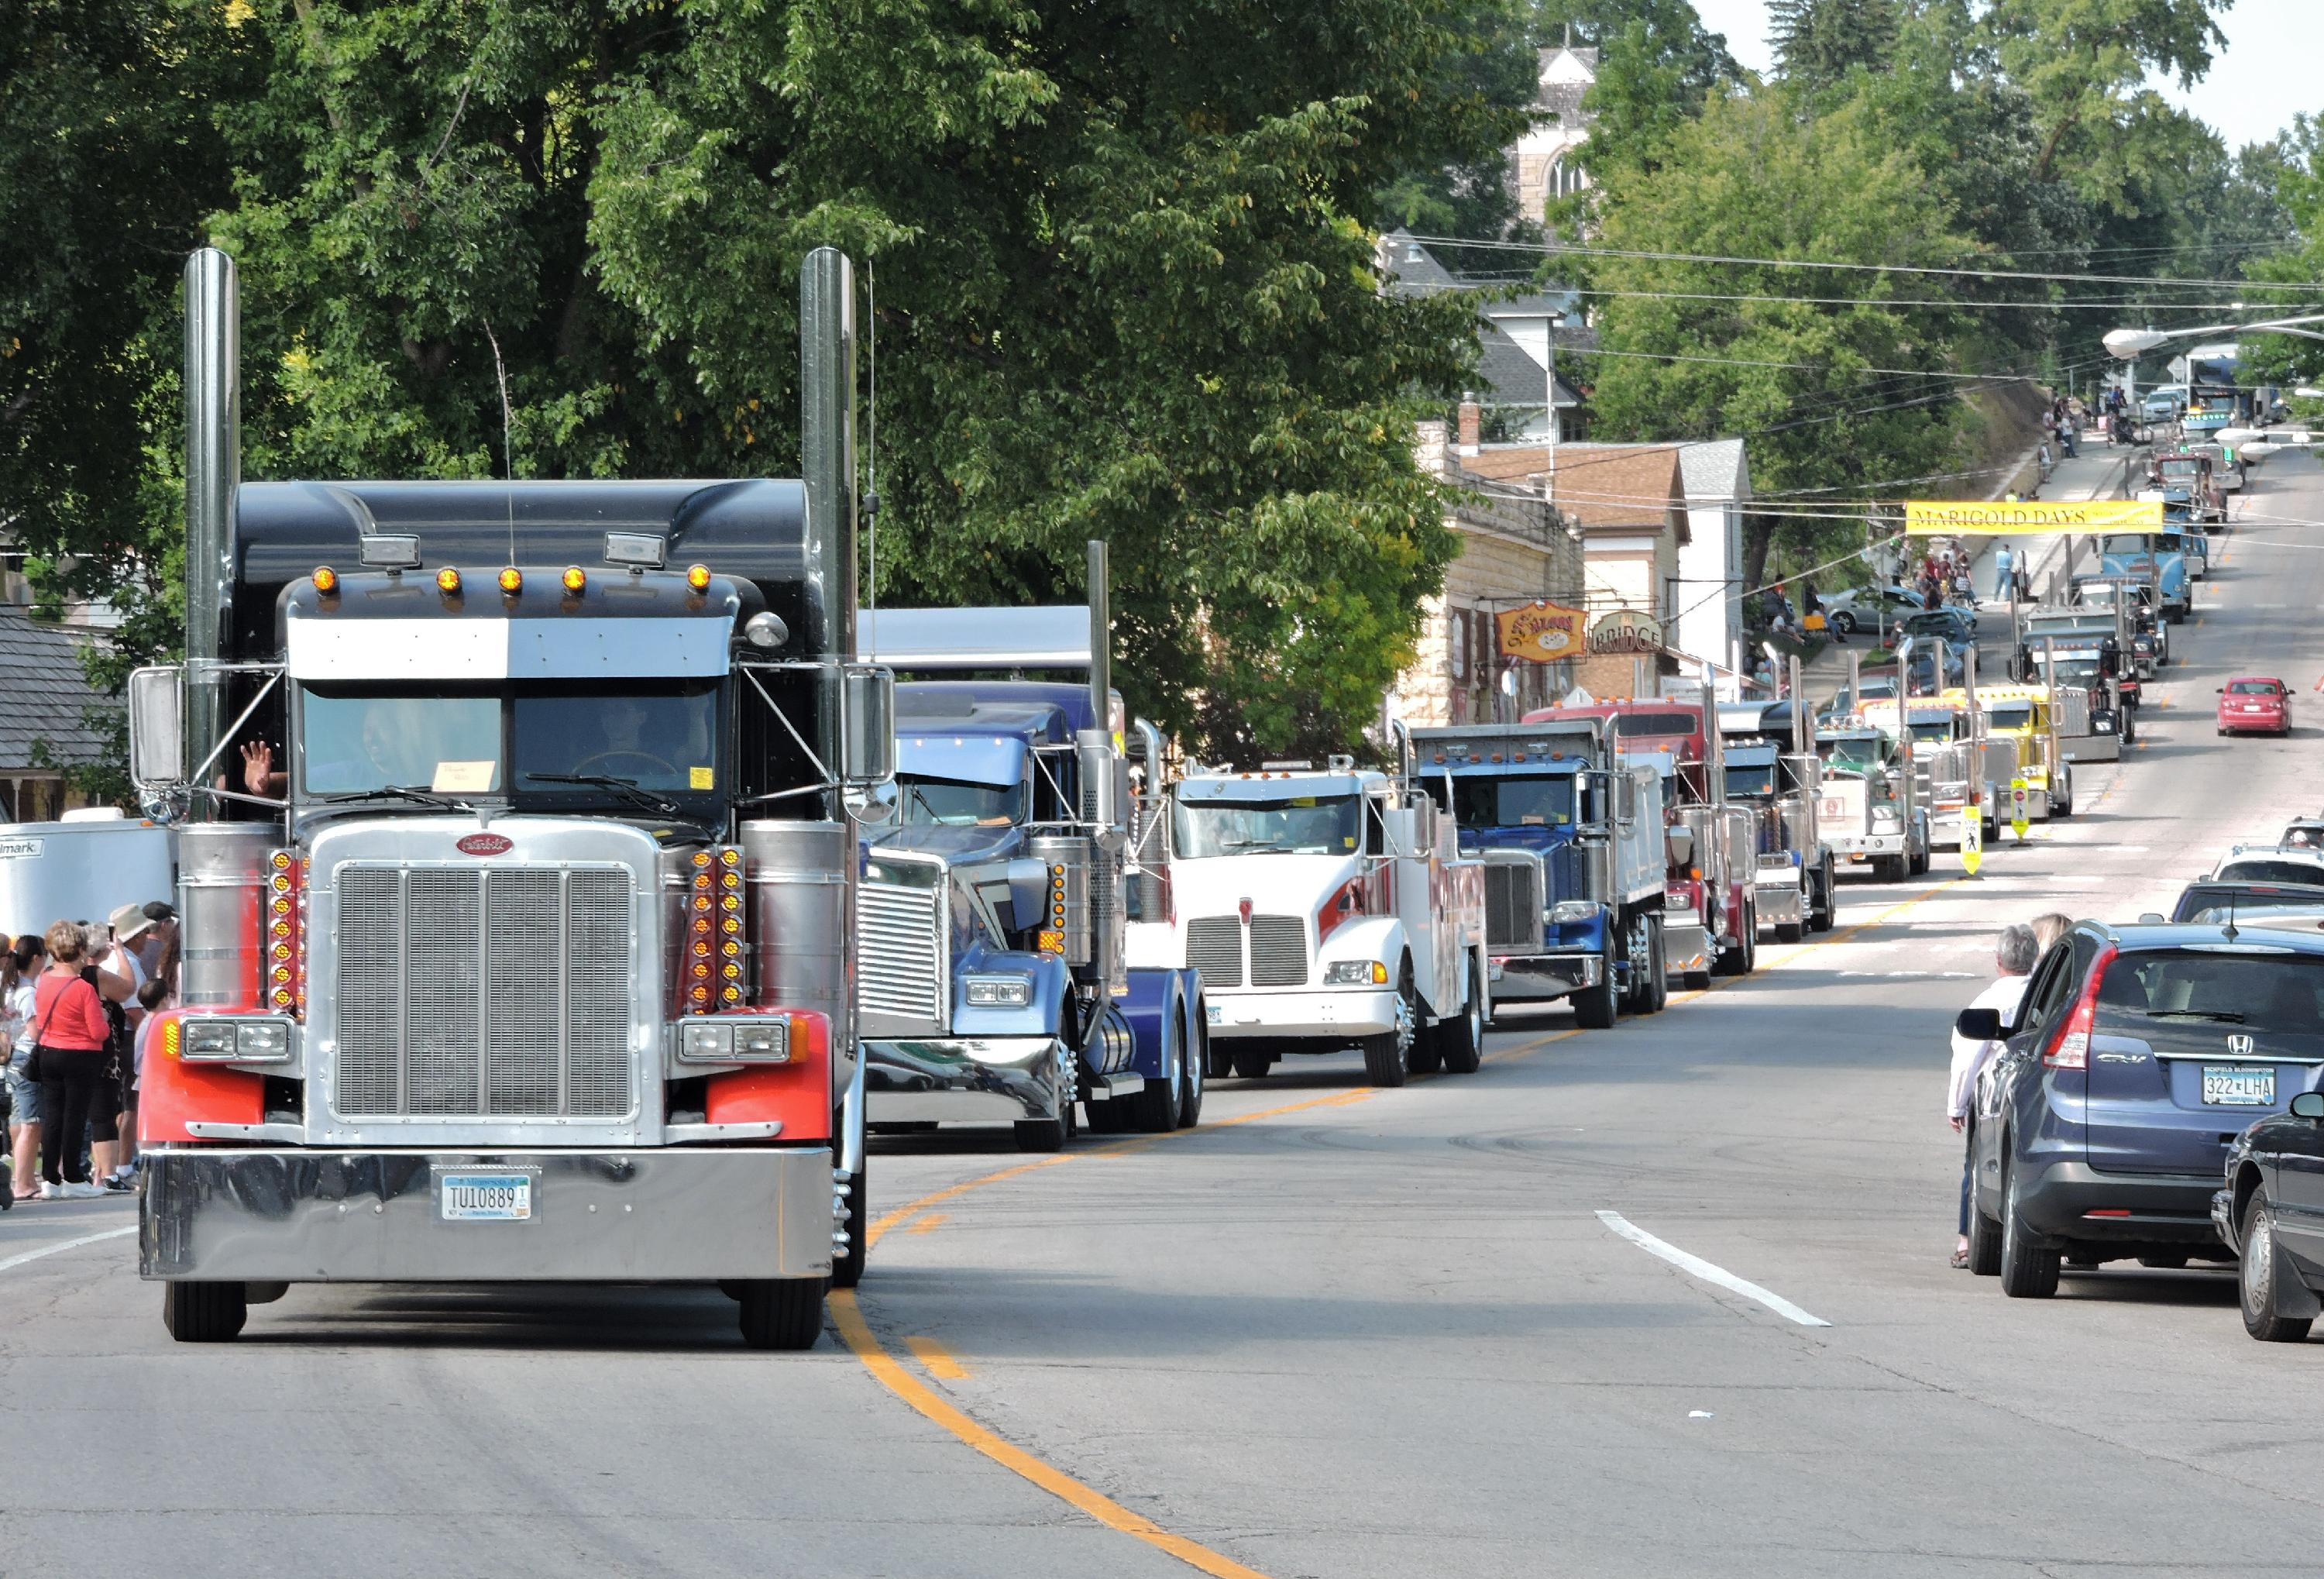 Big Iron Classic Parade, Mantorville